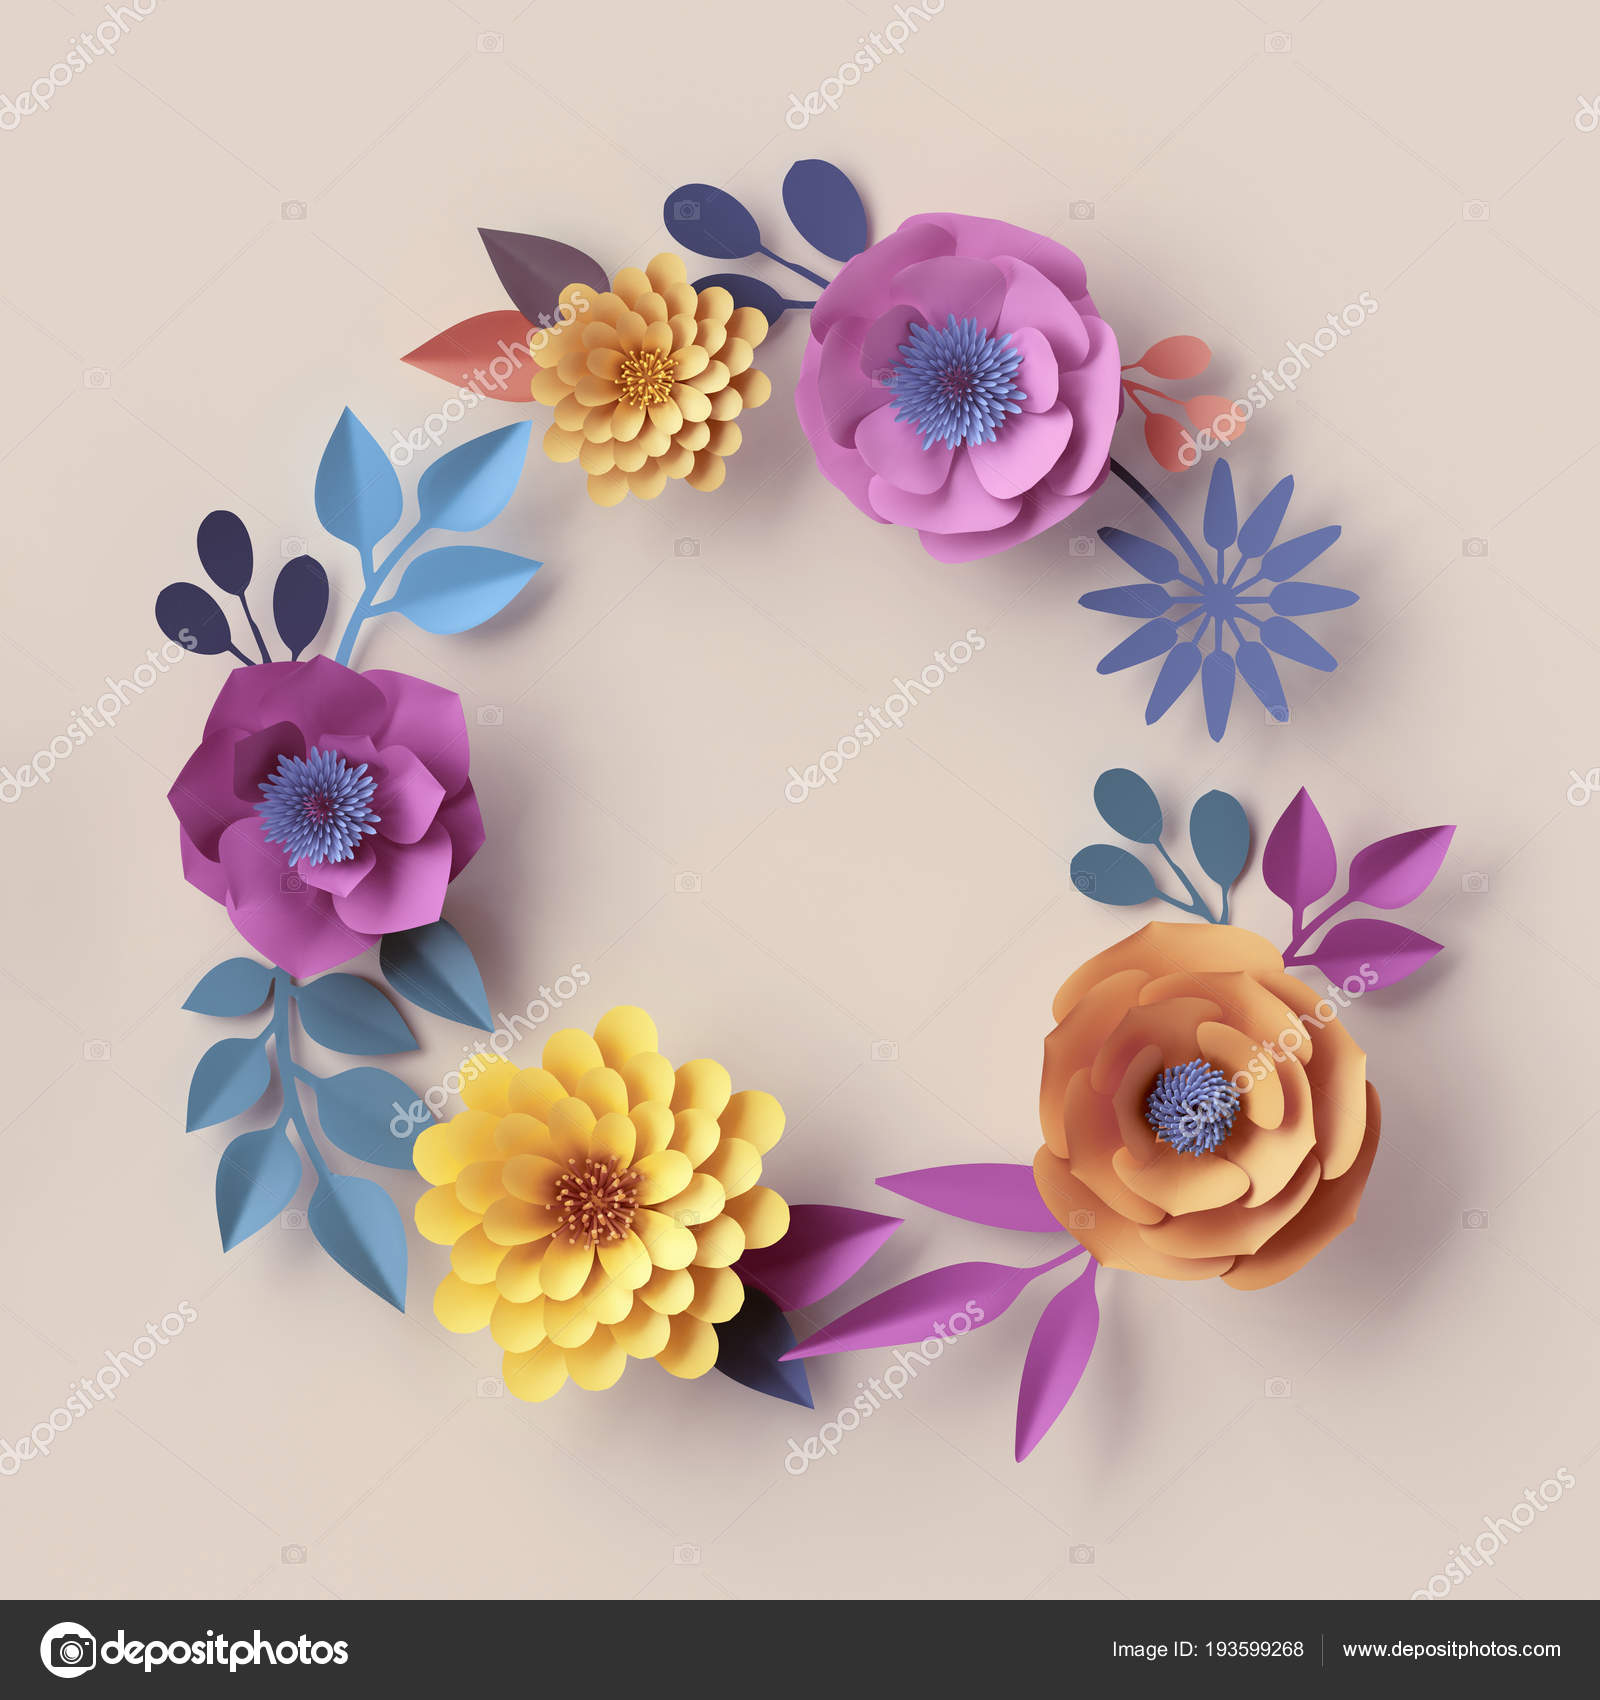 3d Render Pastel Paper Flowers Abstract Botanical Wreath Round